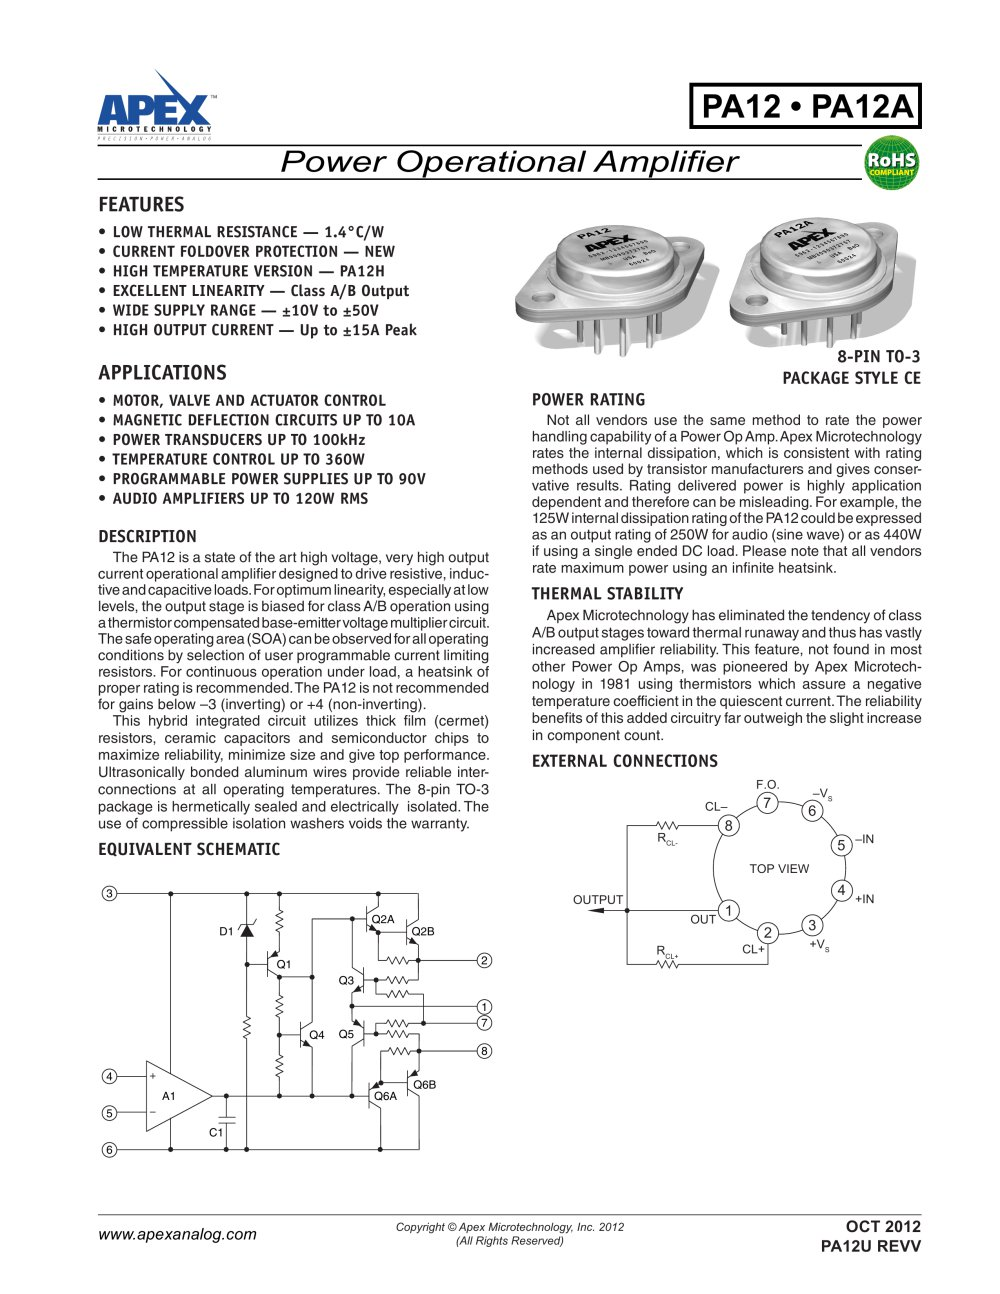 Class A B 15a 100v Power Amplifier Apex Precision Product Pdf 400w High Mosfet 1 5 Pages